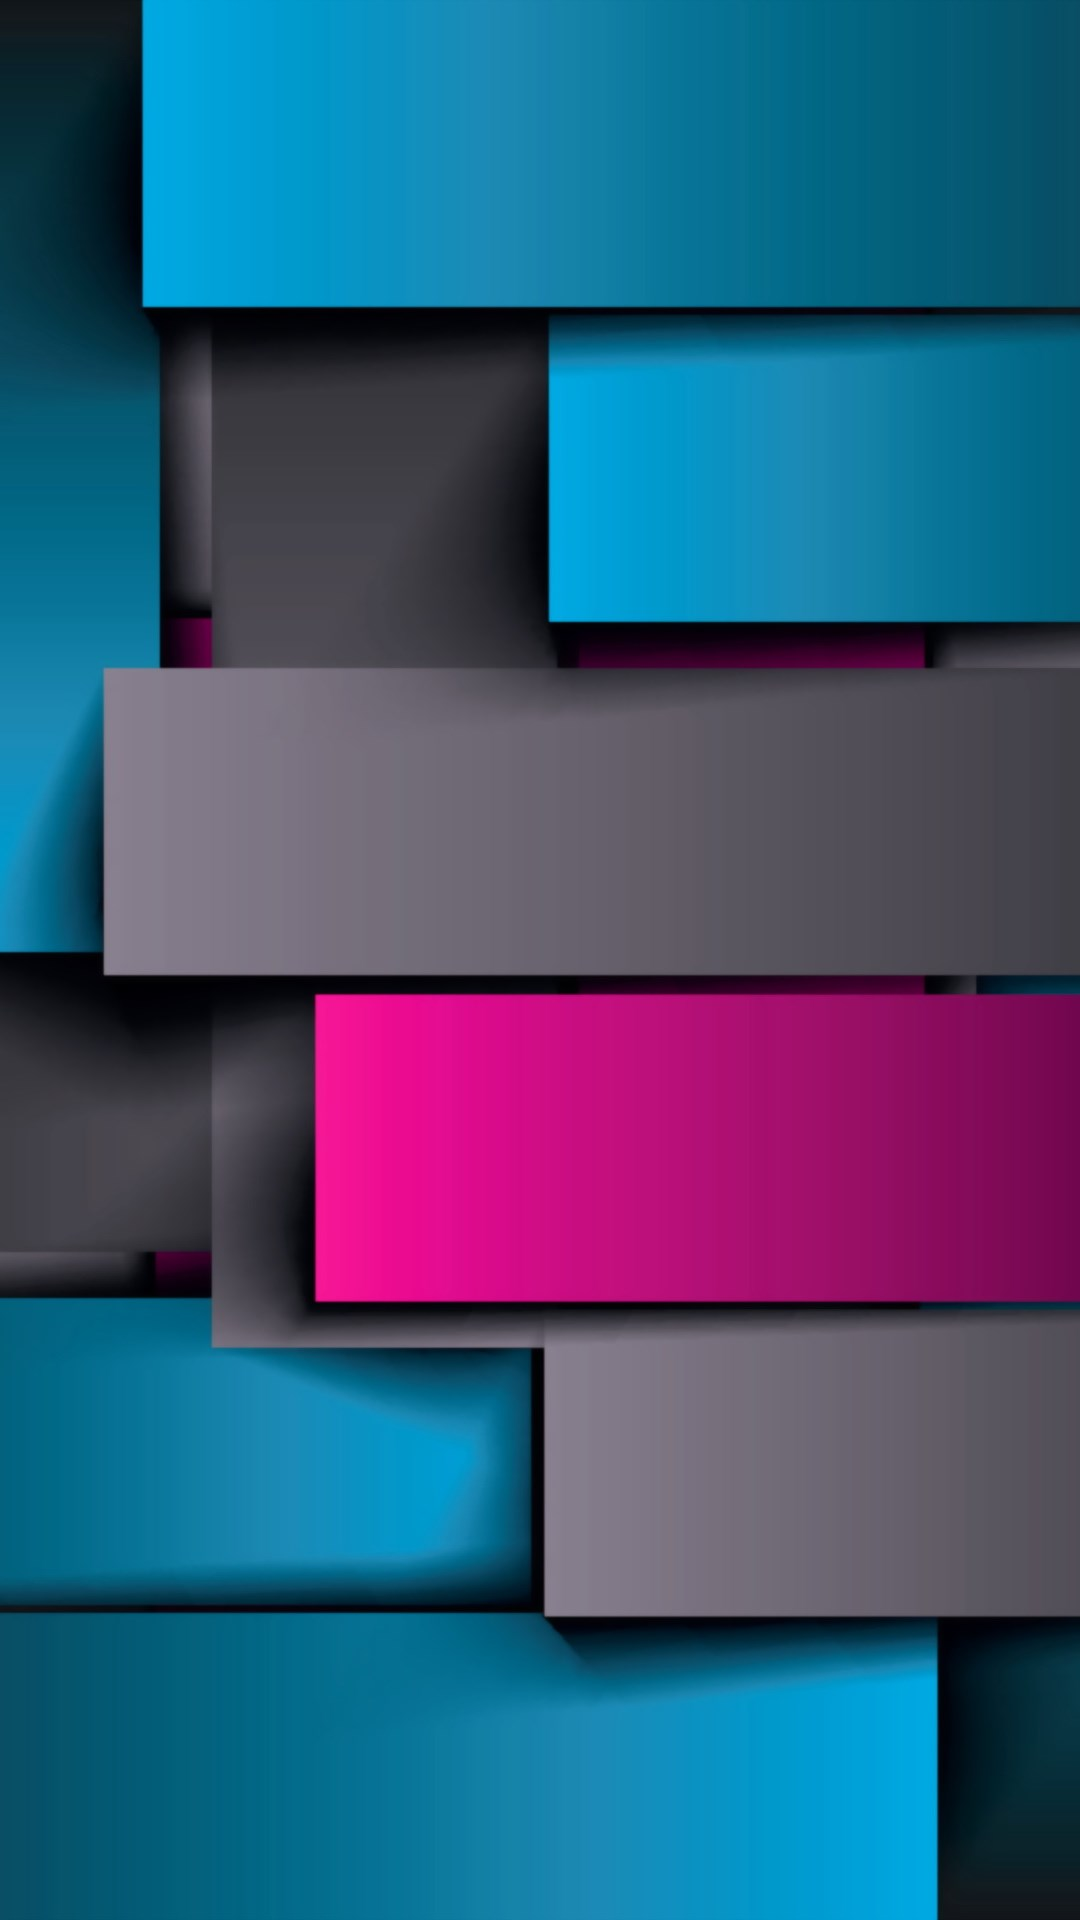 Cool Wallpapers for Windows Phone